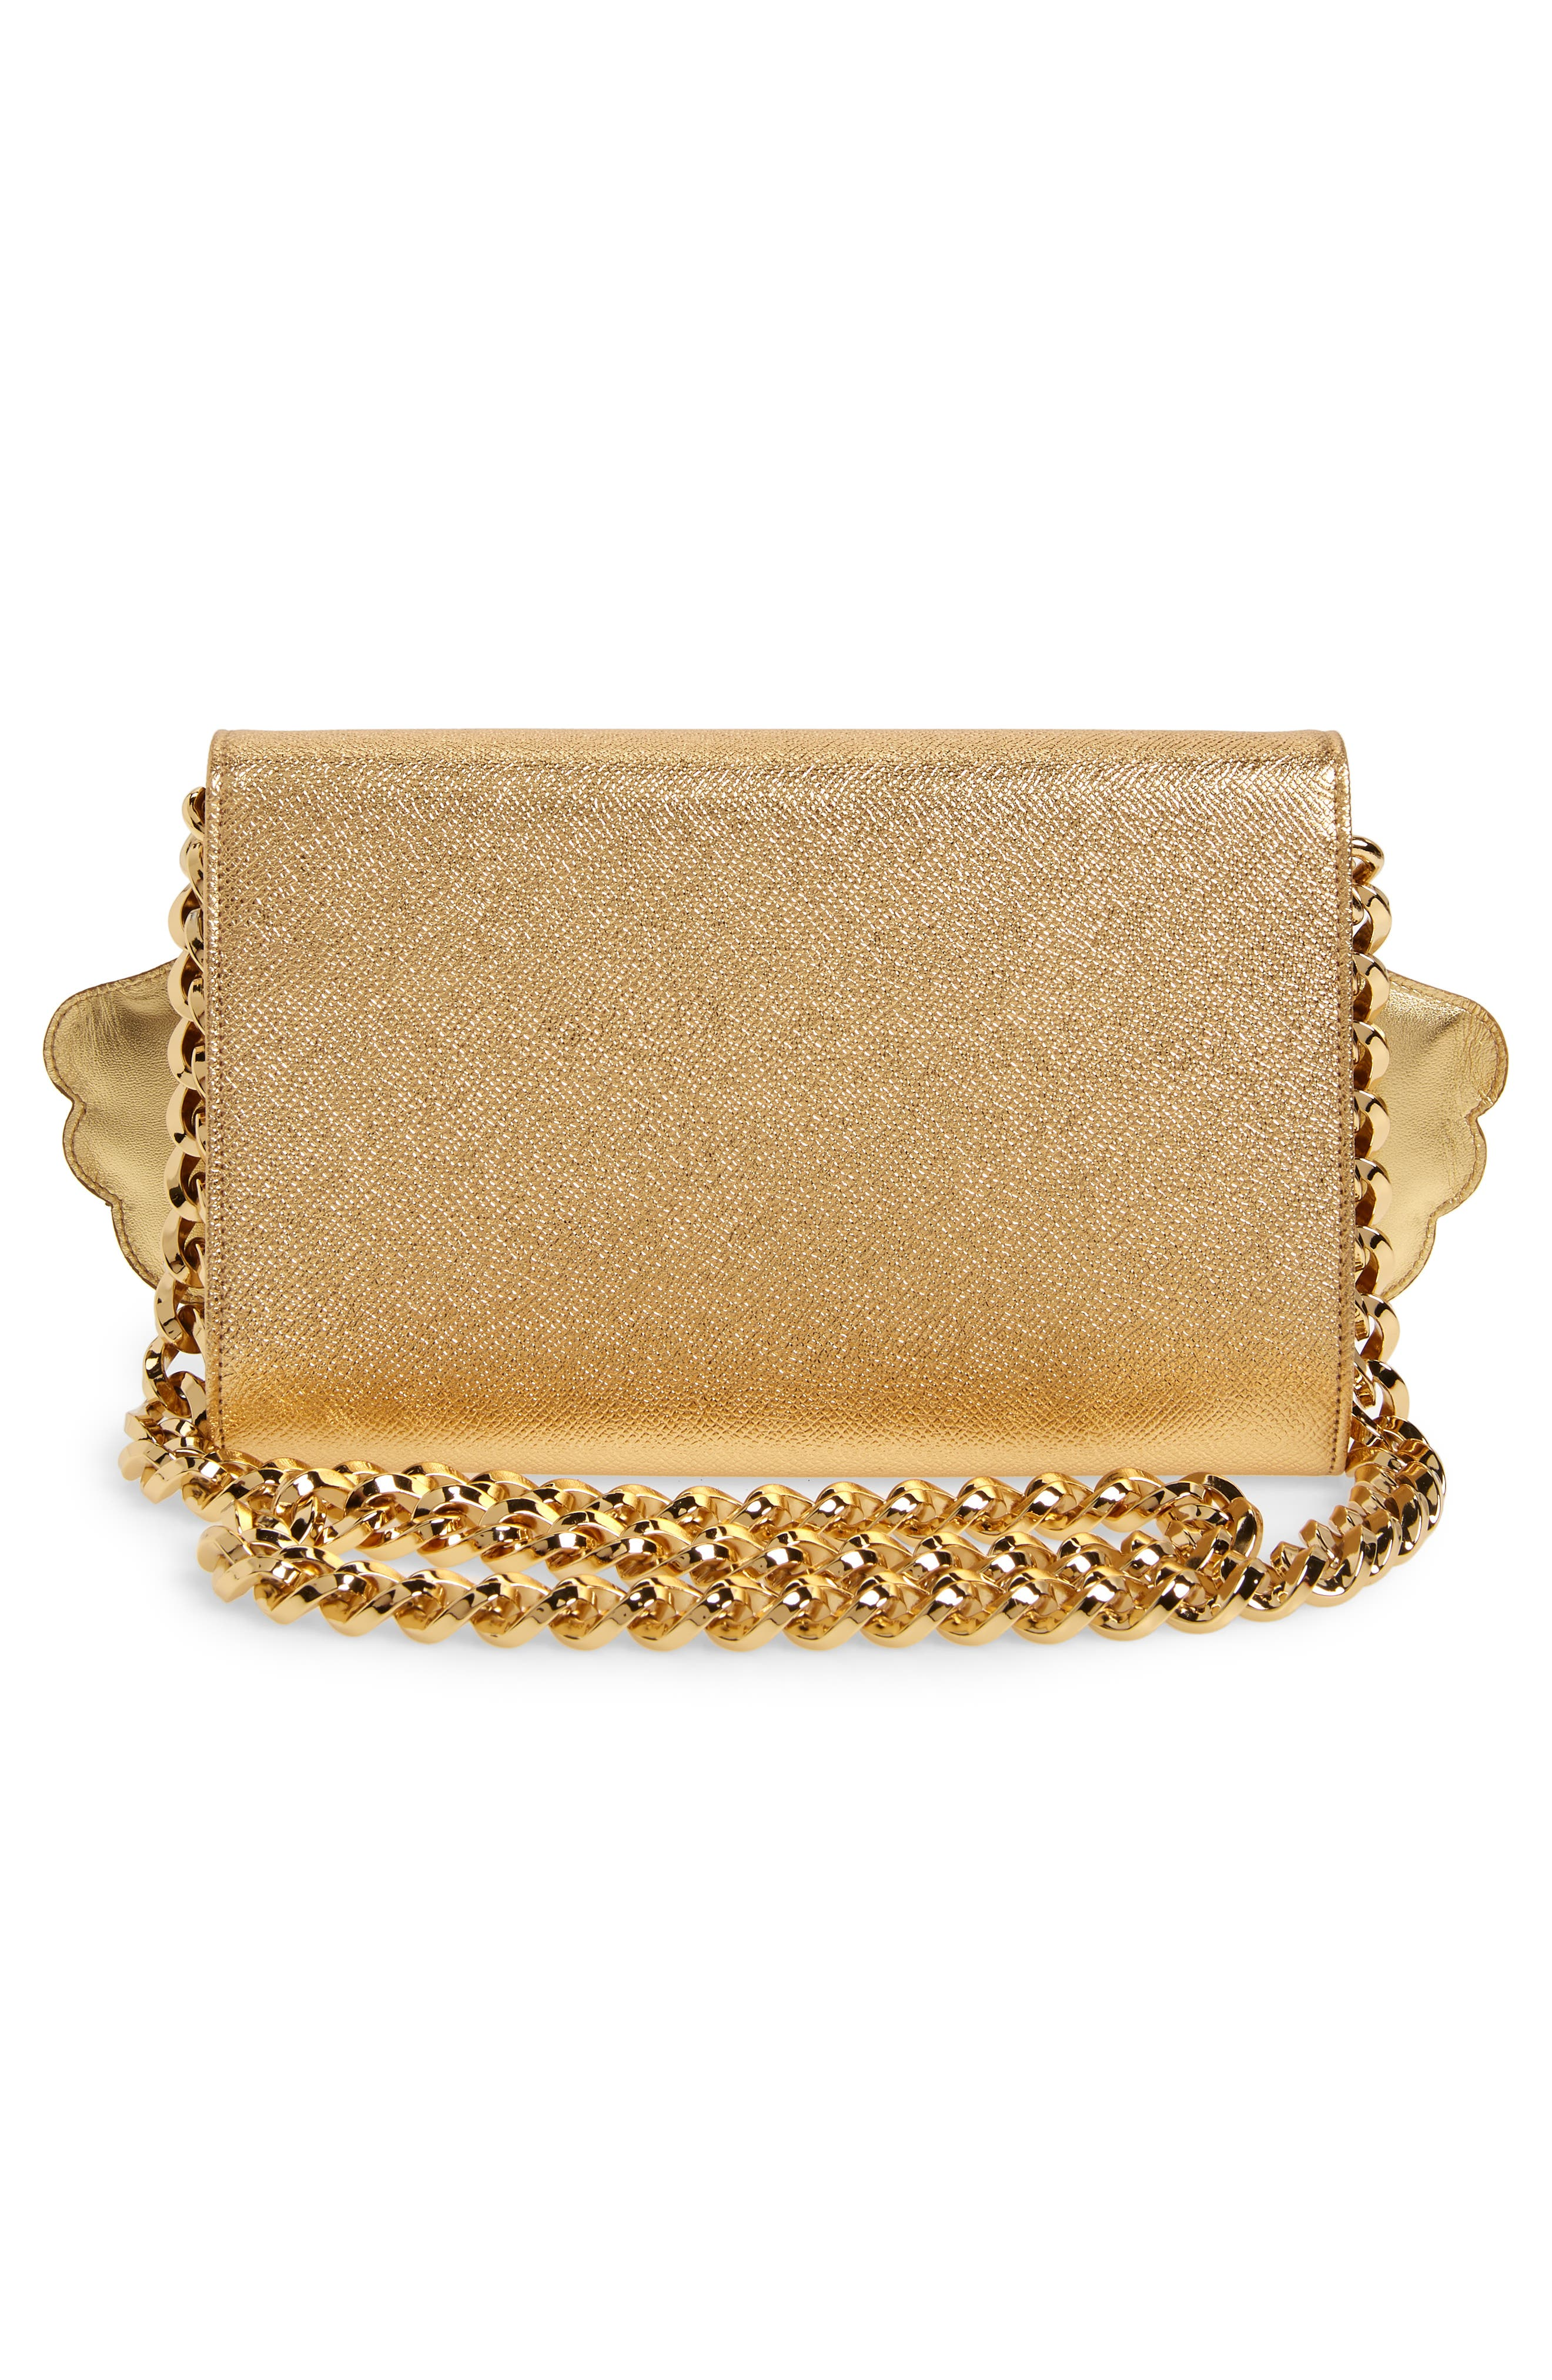 WOC Angel Patch Leather Clutch,                             Alternate thumbnail 3, color,                             GOLD